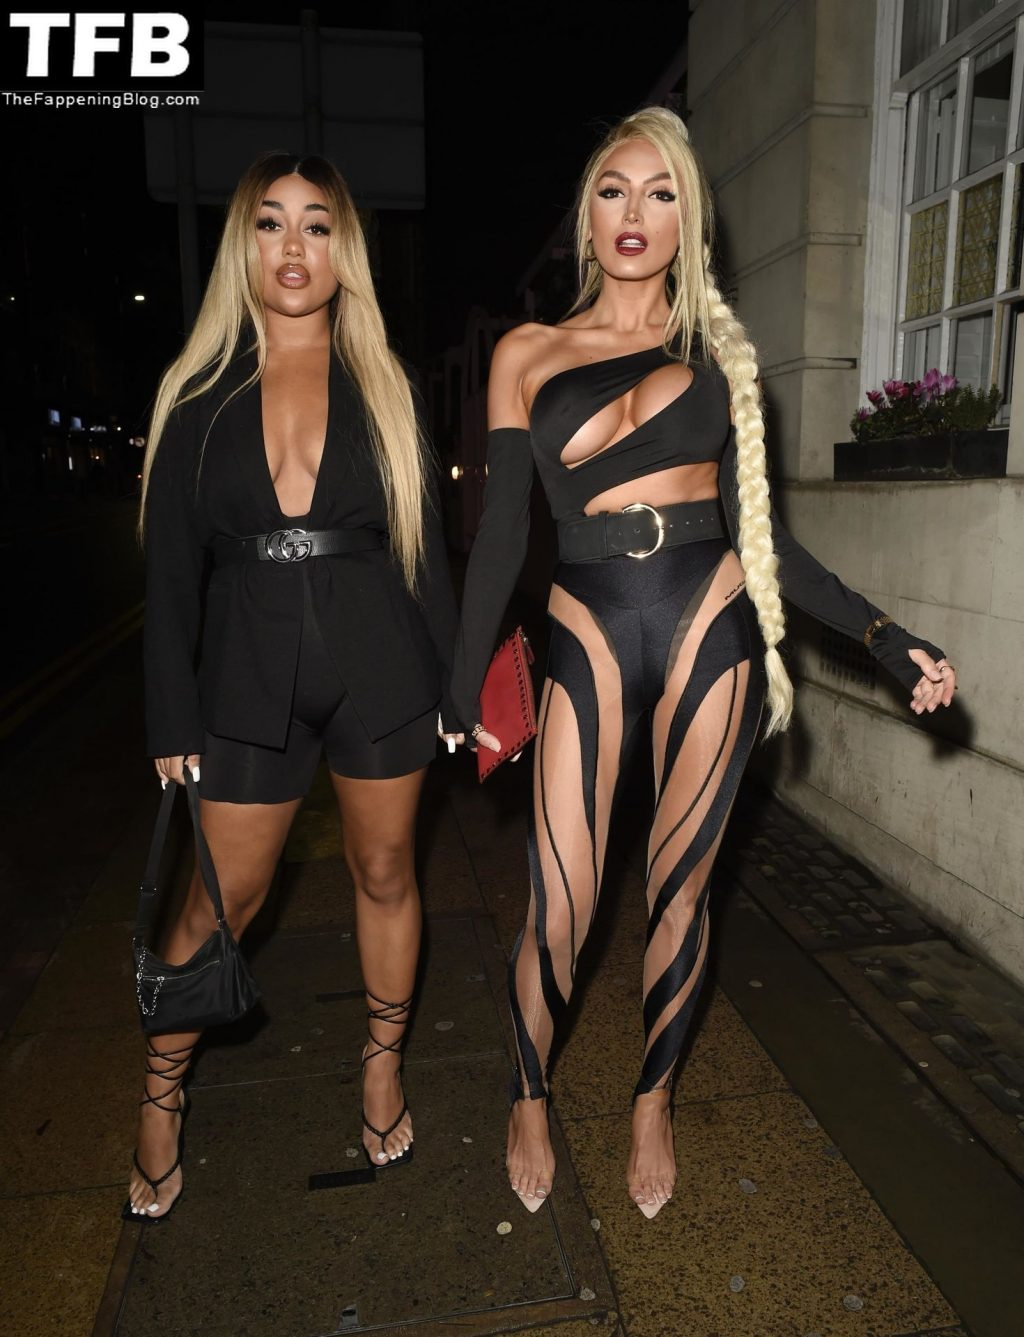 ZaraLena Jackson & Marlie Lewis Look Hot at Boujee in Manchester (31 Photos)